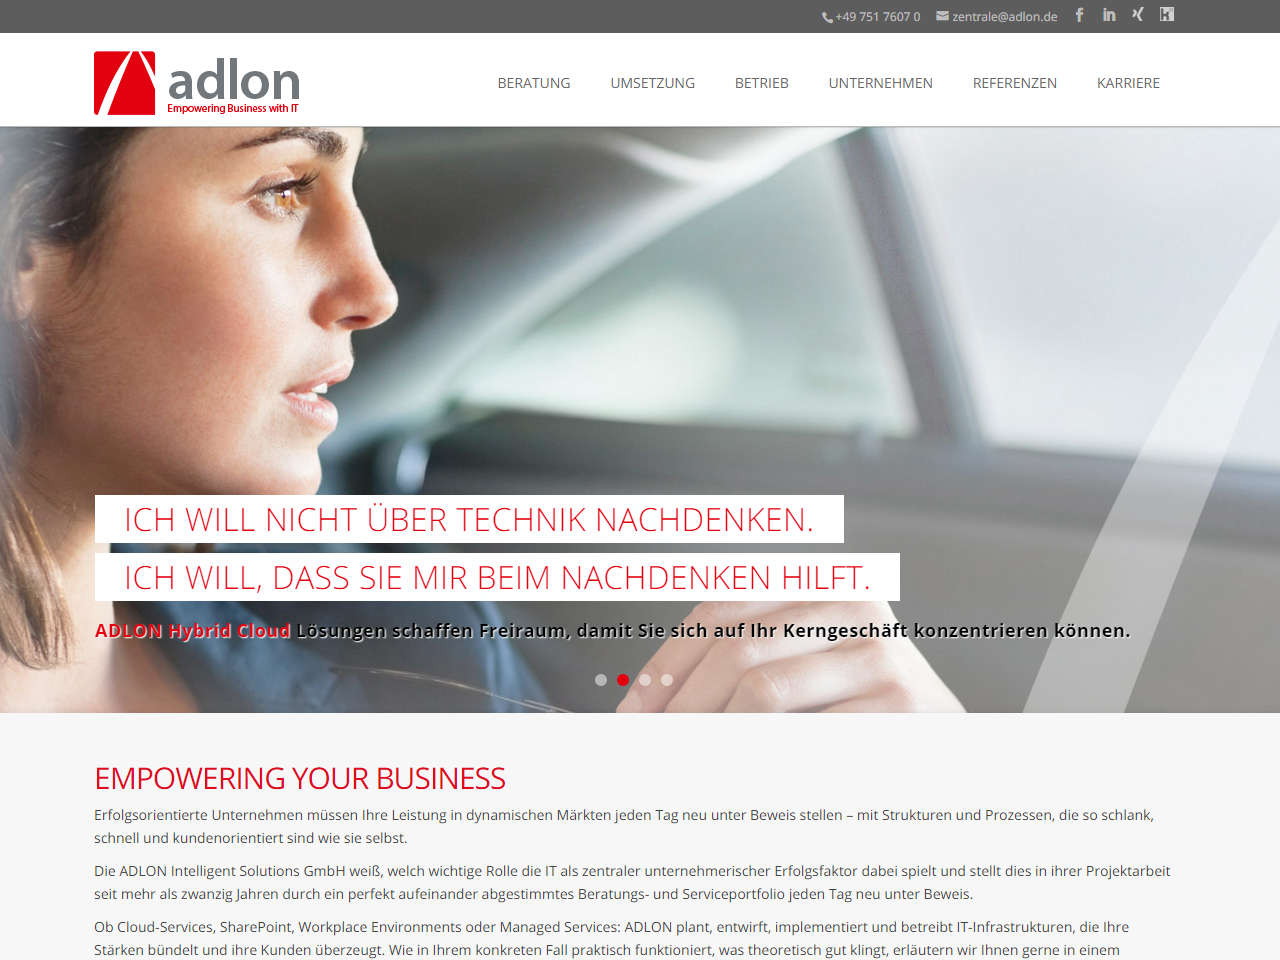 ADLON Intelligent Solutions GmbH Screenshot